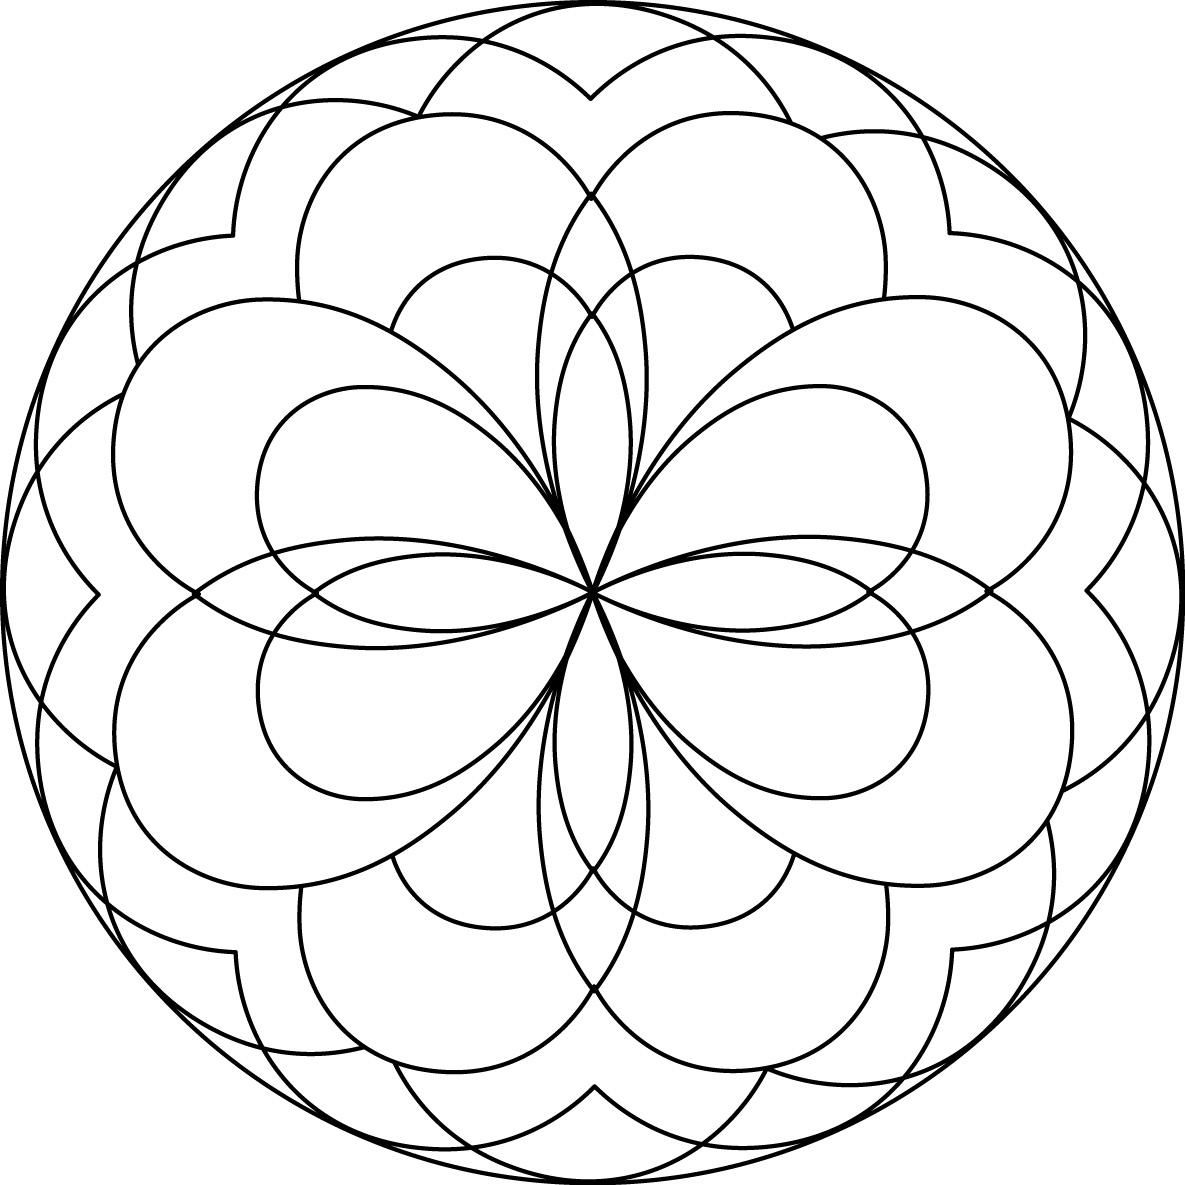 Mandala Coloring Pages For Preschoolers